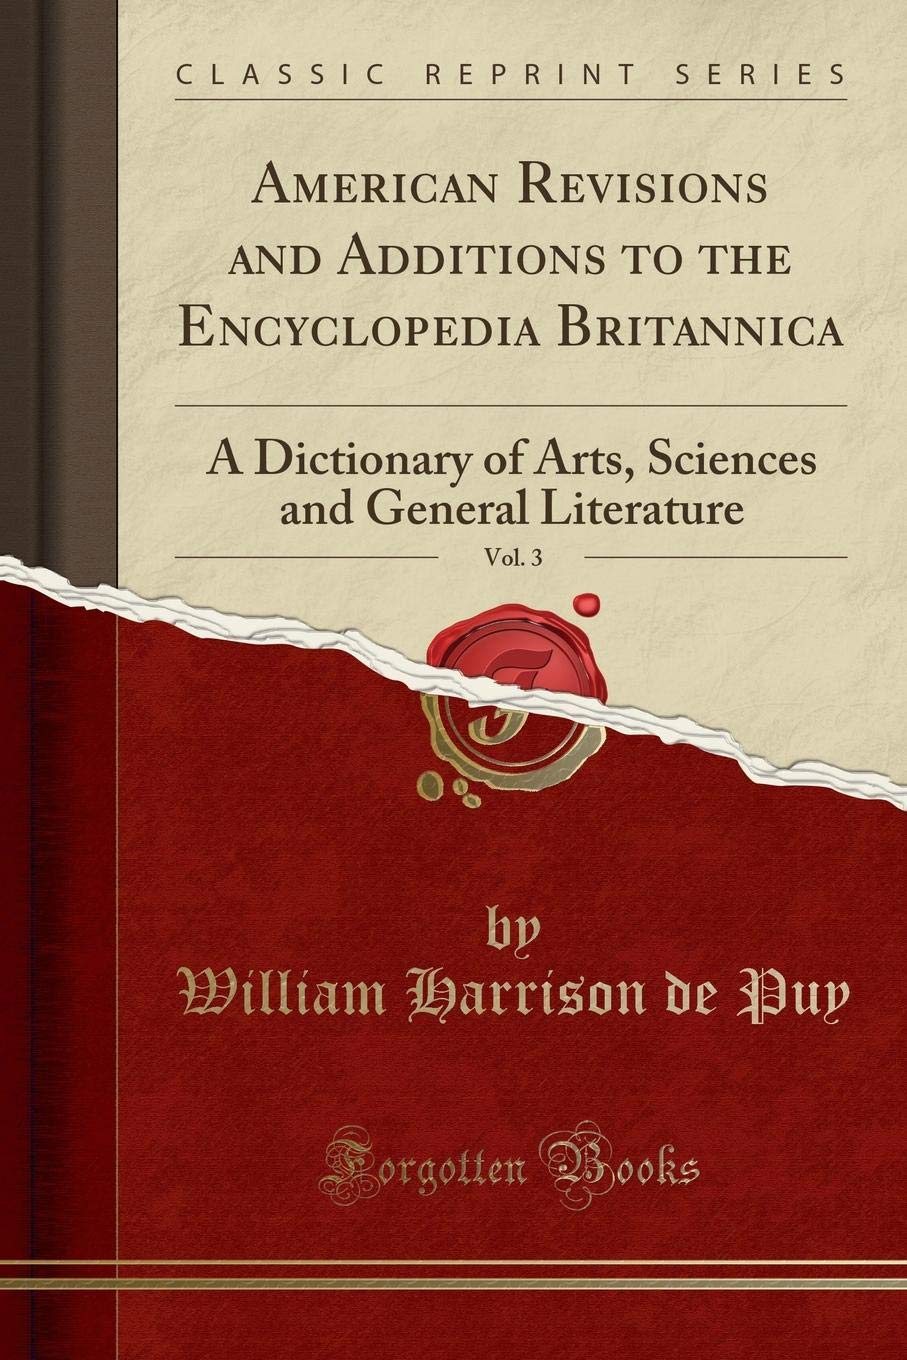 American Revisions and Additions to the Encyclopedia